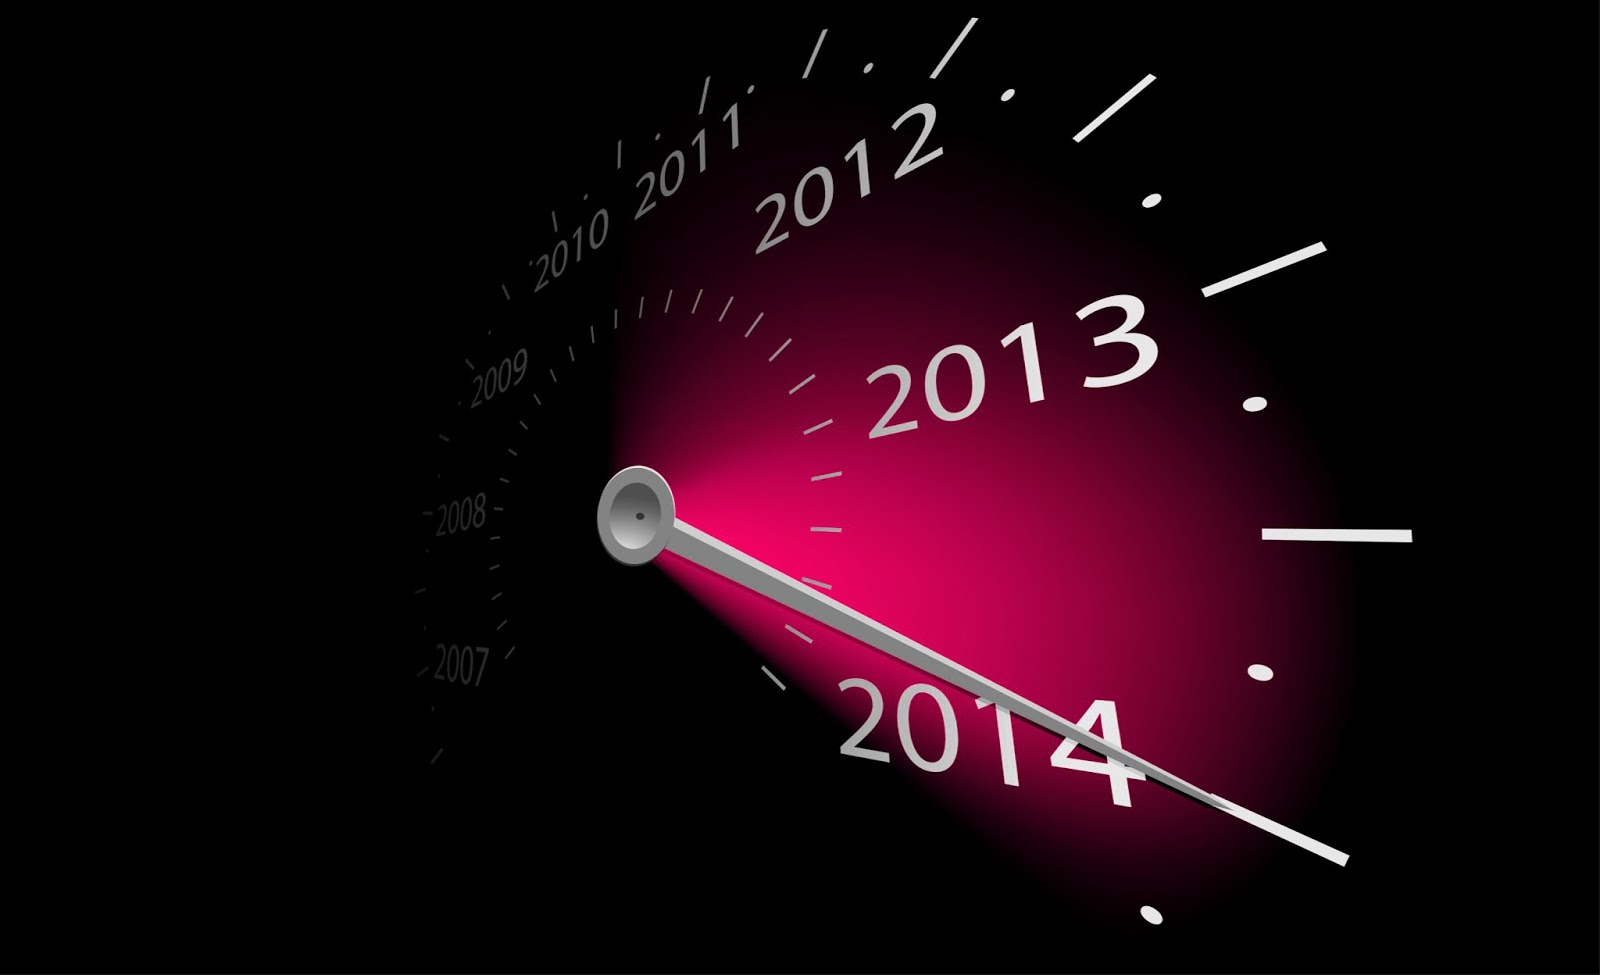 Happy New Year 2014 Best Wallpapers | HD Wallpapers Window Top Rated ...